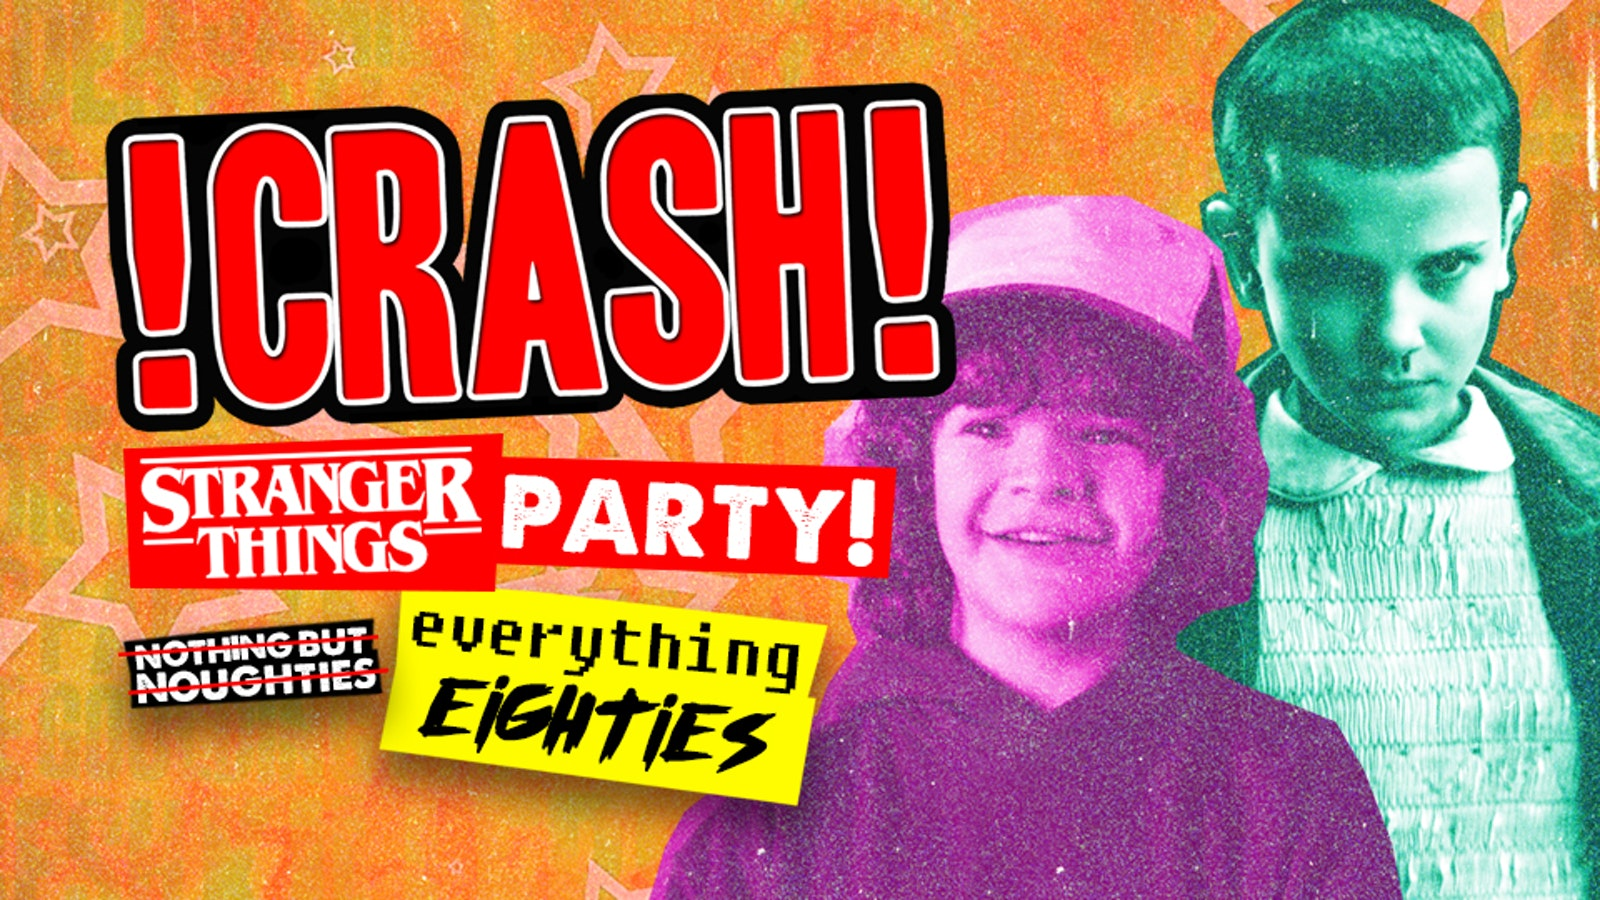 Stranger Things Party at Crash | £2 Entry & 2 4 1 Drinks!